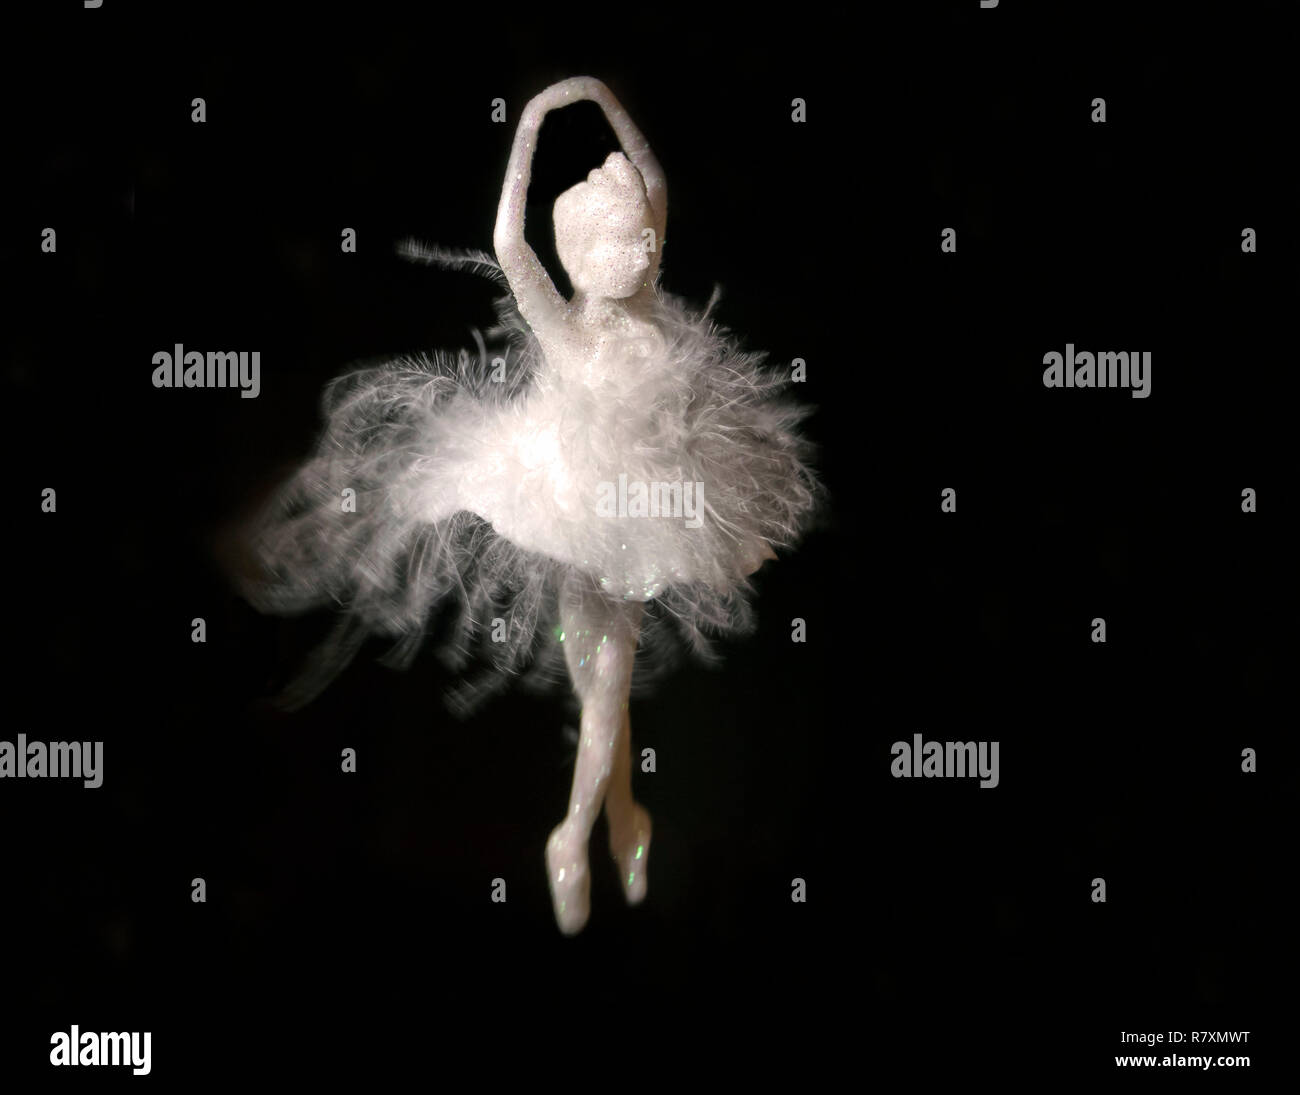 A beautiful white hanging ballerina with feathers against a dark background Stock Photo